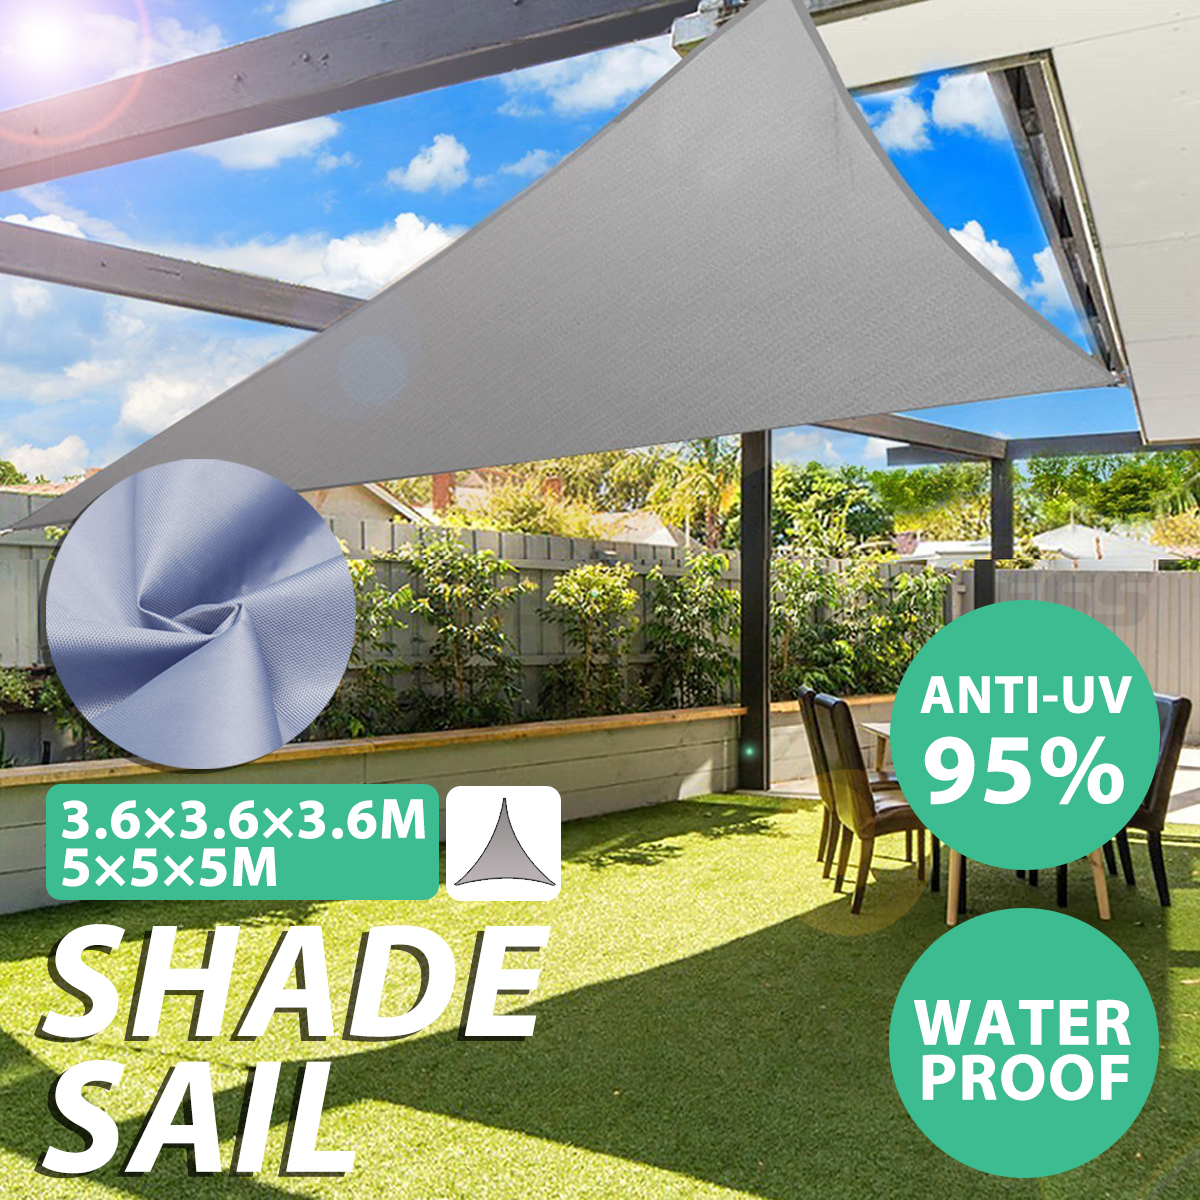 3.6m/5m Triangle Waterproof Sun Shield Shape Awning Cover Cap Outdoor Garden Shade Sails & Nets